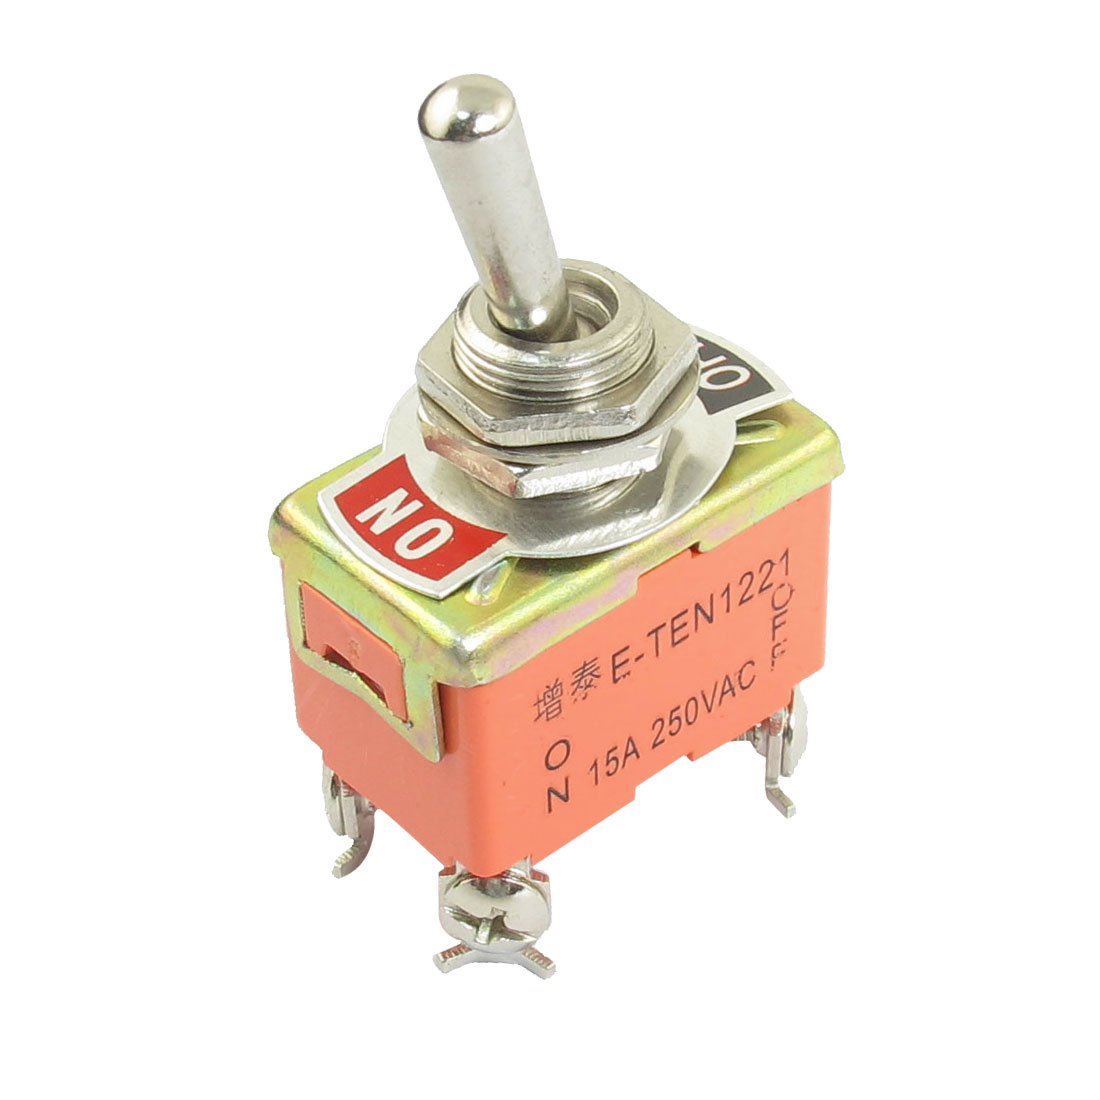 AC 250V 15A 4 Screw Terminals ON/OFF 2 Position DPST Latching Toggle Switch Controller